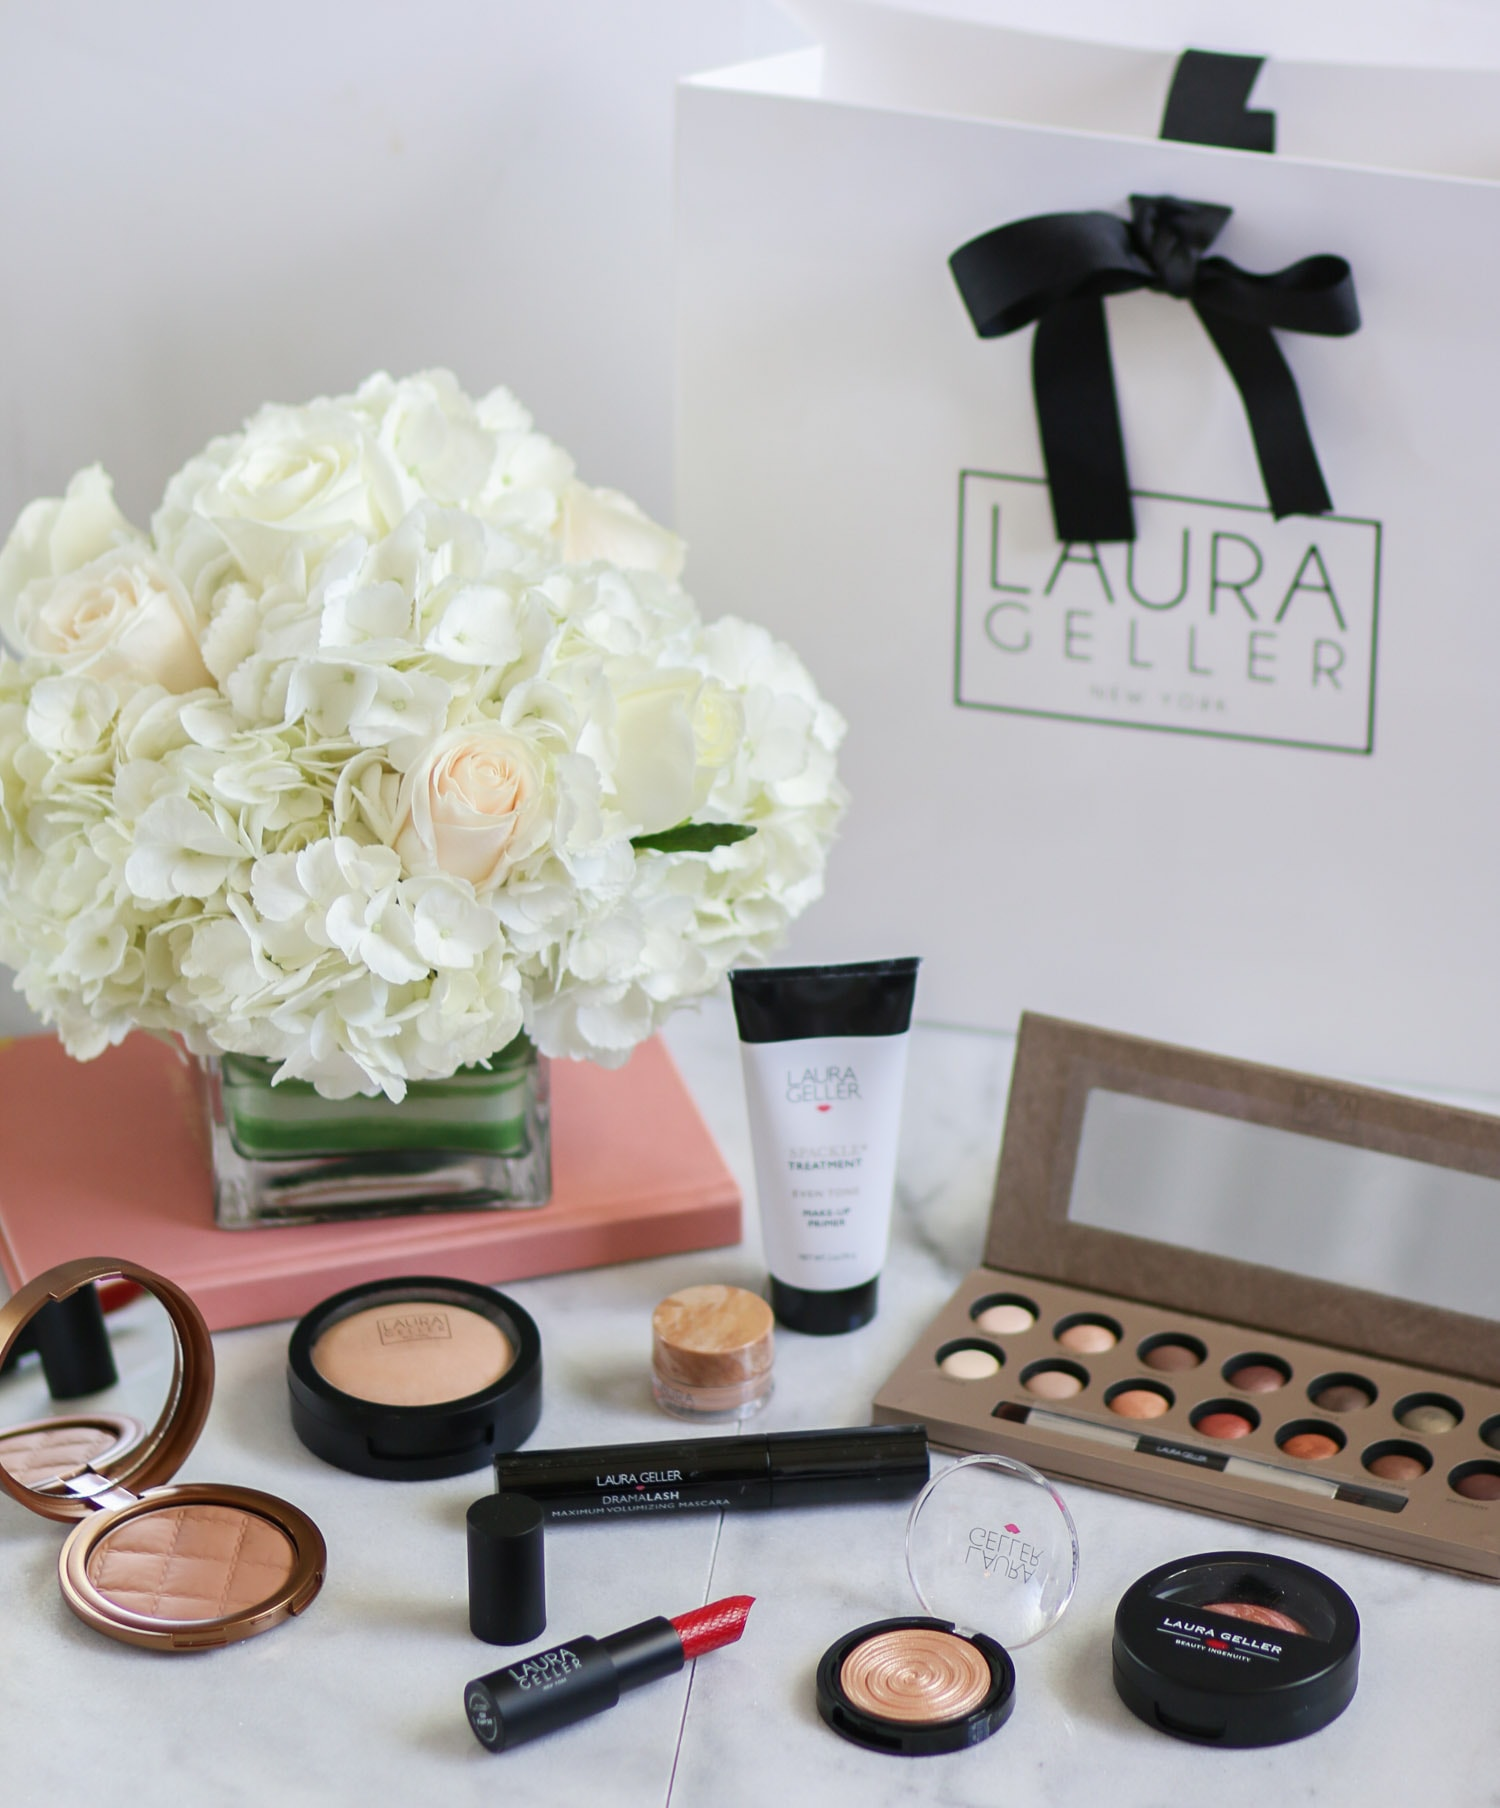 I've been SO incredibly impressed with these Laura Geller makeup products. They give a naturally pretty look, and all of the products are basically fool-proof. Click through this pin to see a full review + swatches of the @laurageller Baked Iconic lipsticks from beauty blogger Ashley Brooke Nicholas!